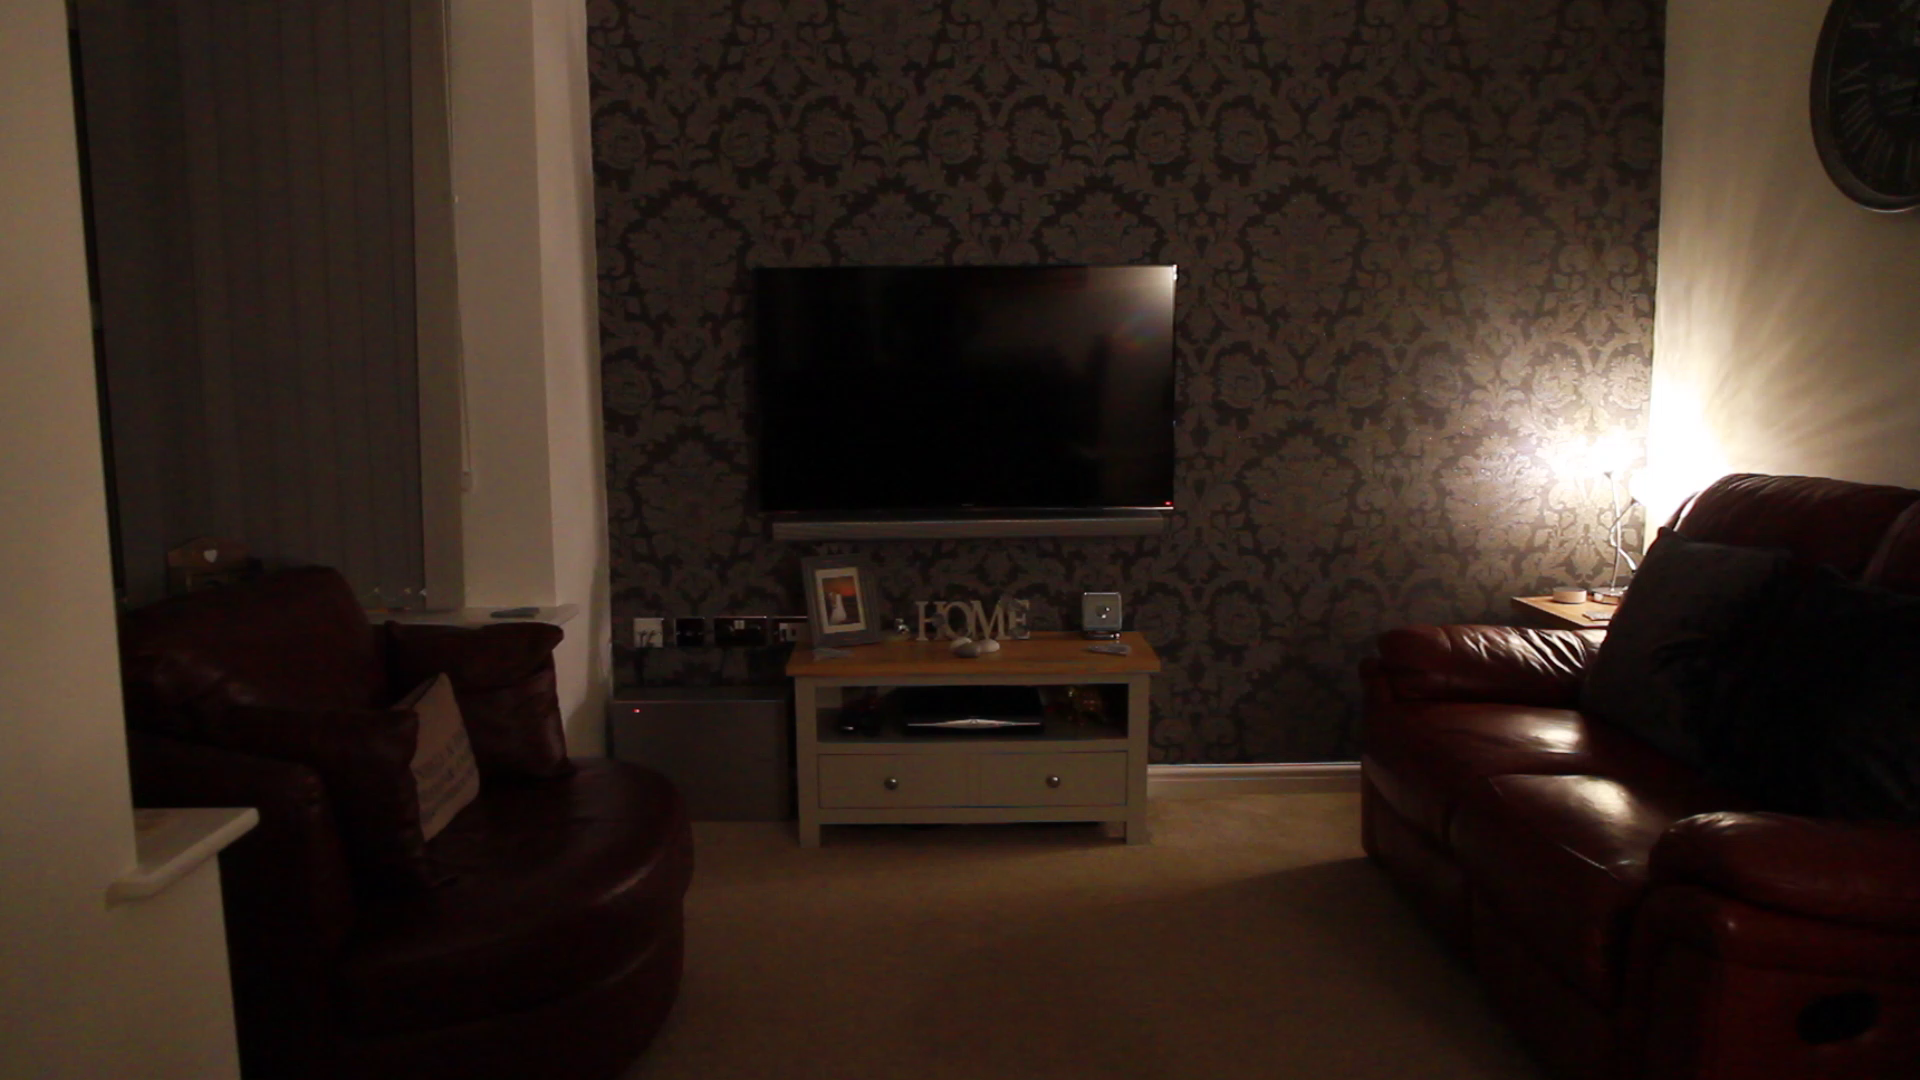 Amazon co uk:Customer reviews: Smart LED Strip Light Work with